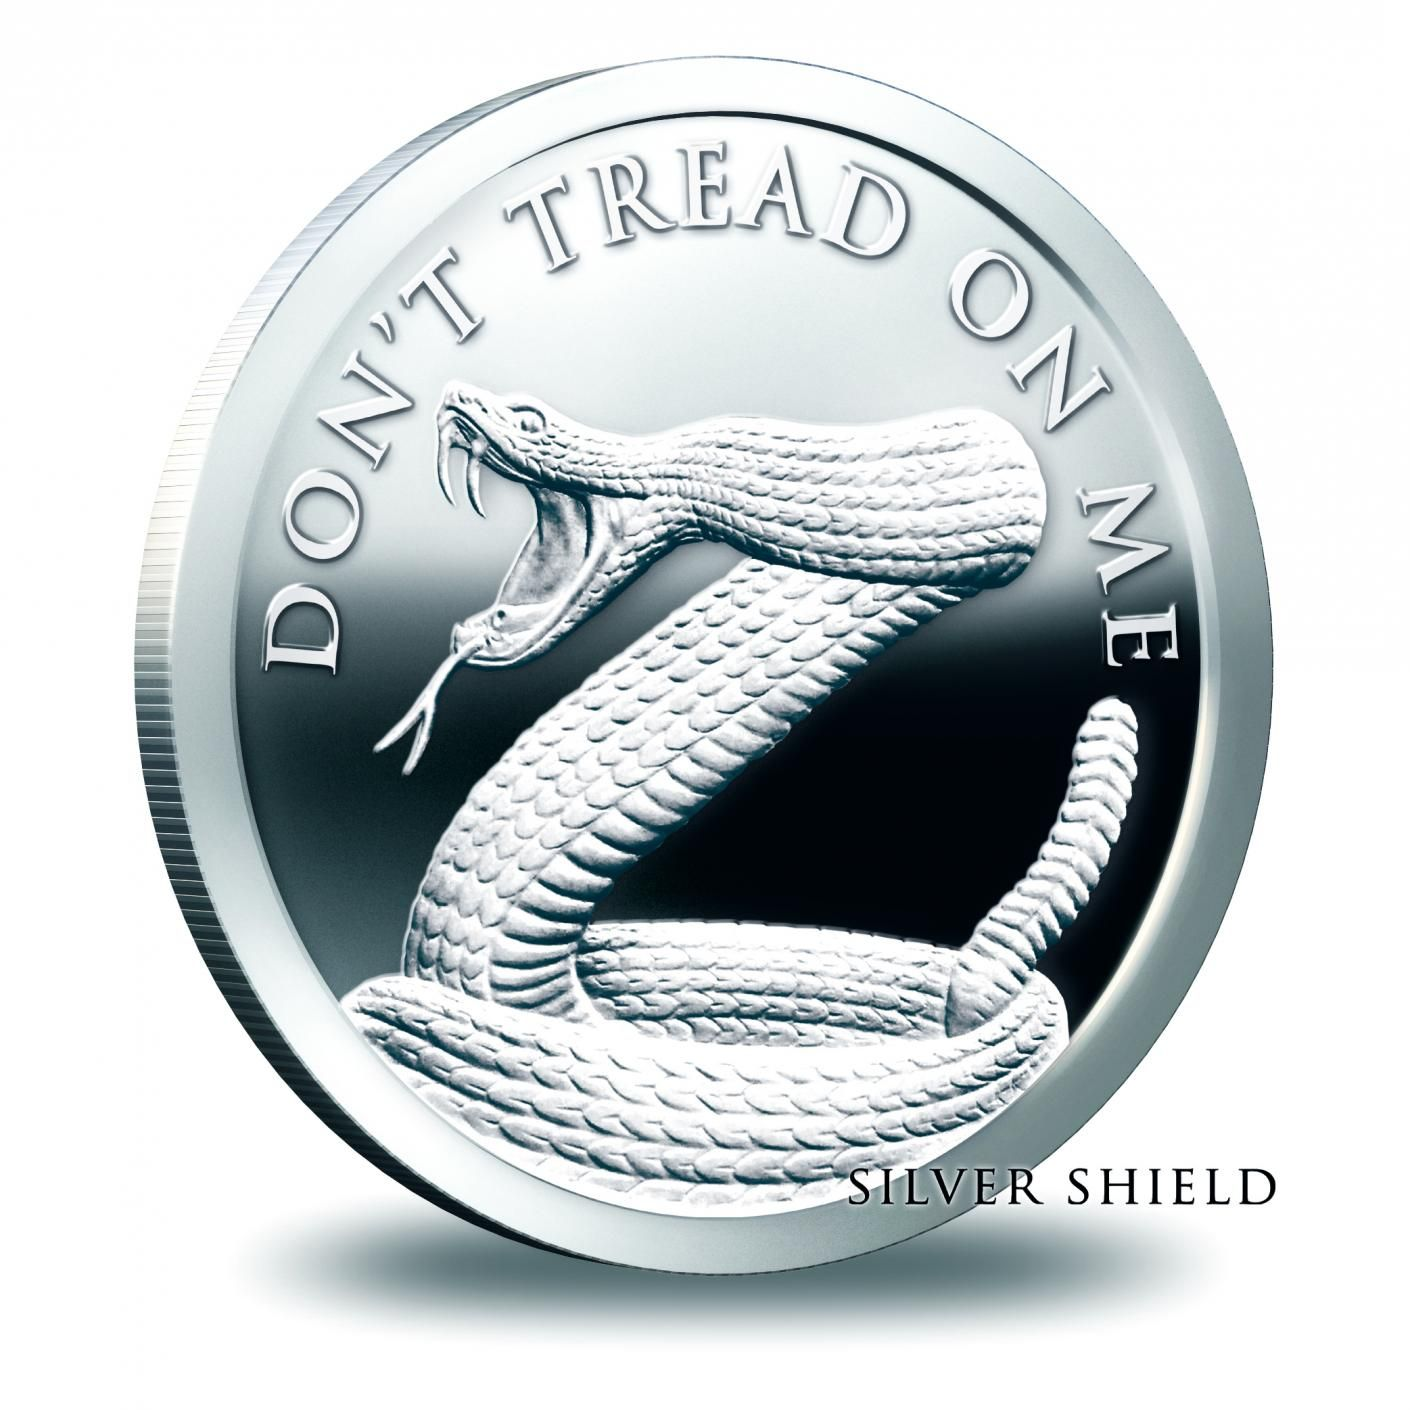 Silver Shield Don T Tread On Me 1 Oz Silver Proof Http